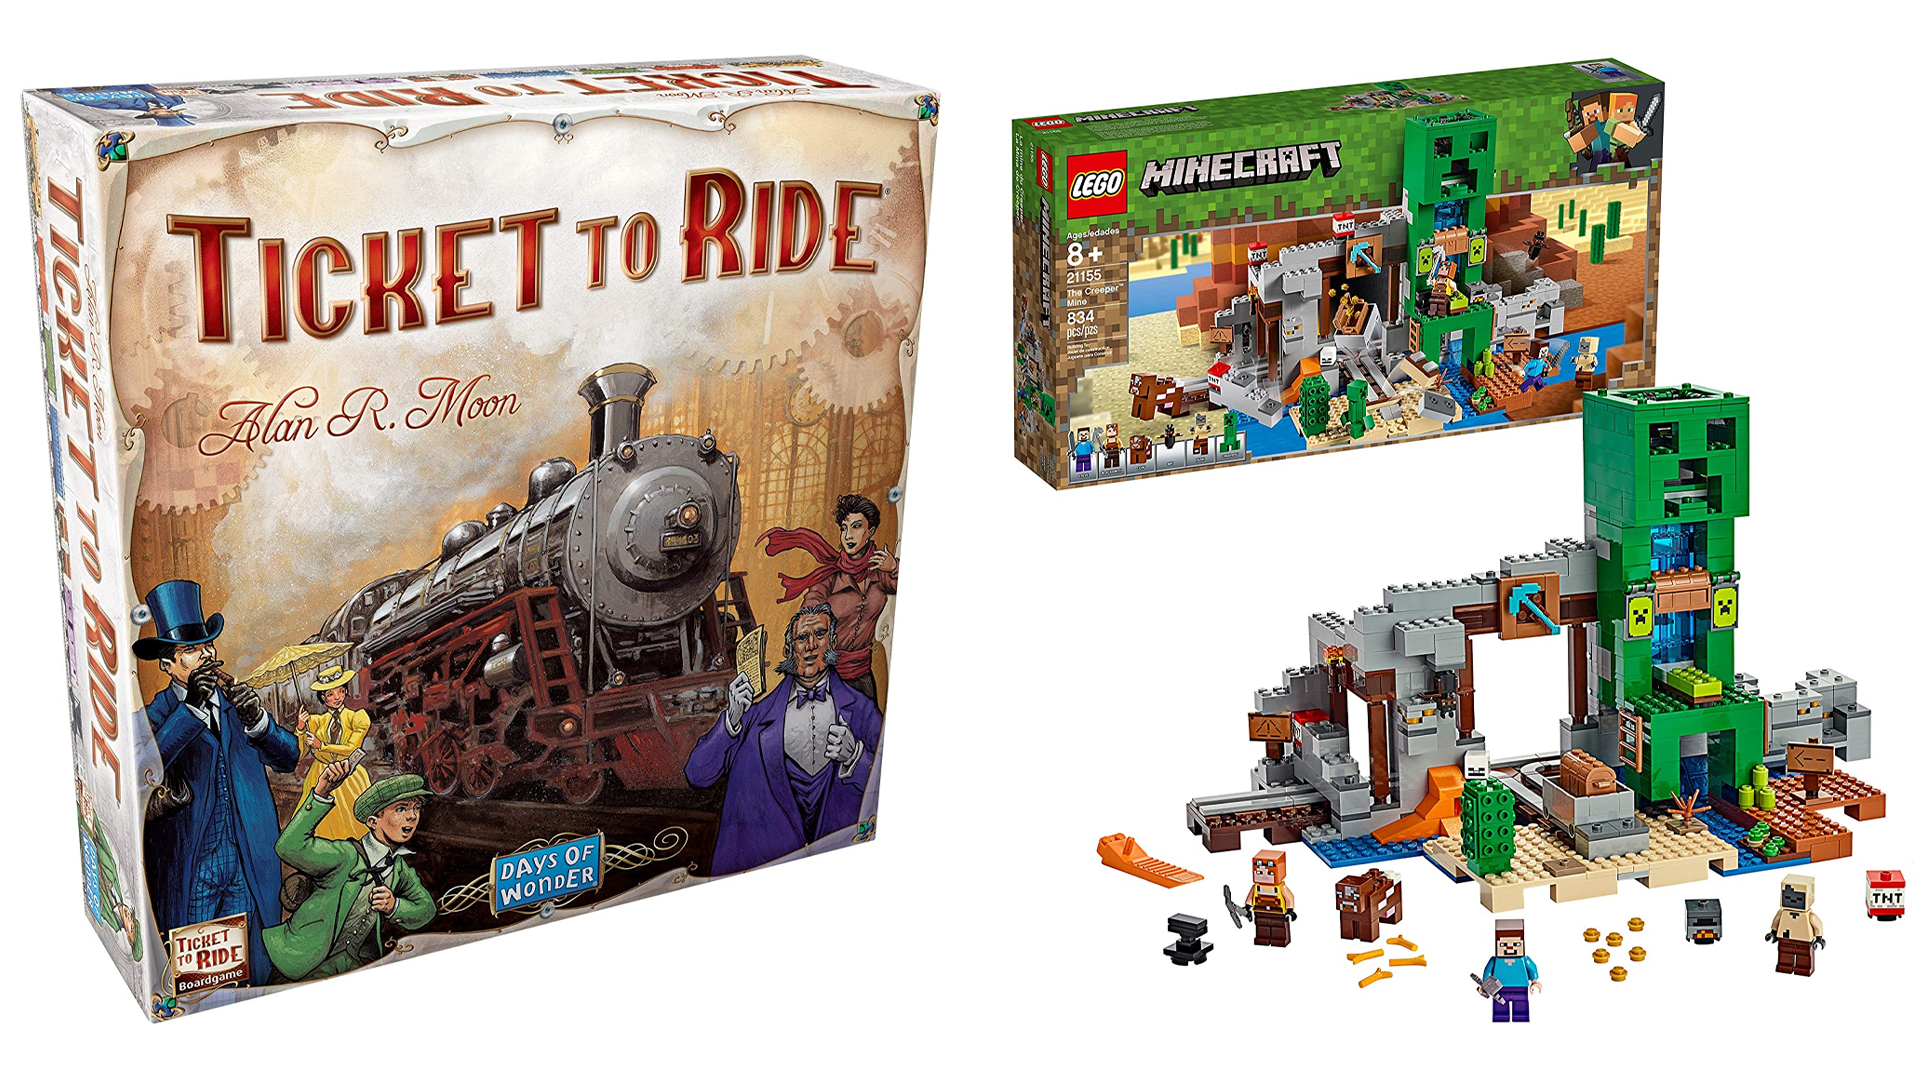 The Ticket to Ride board game and the LEGO Minecraft Creeper set.